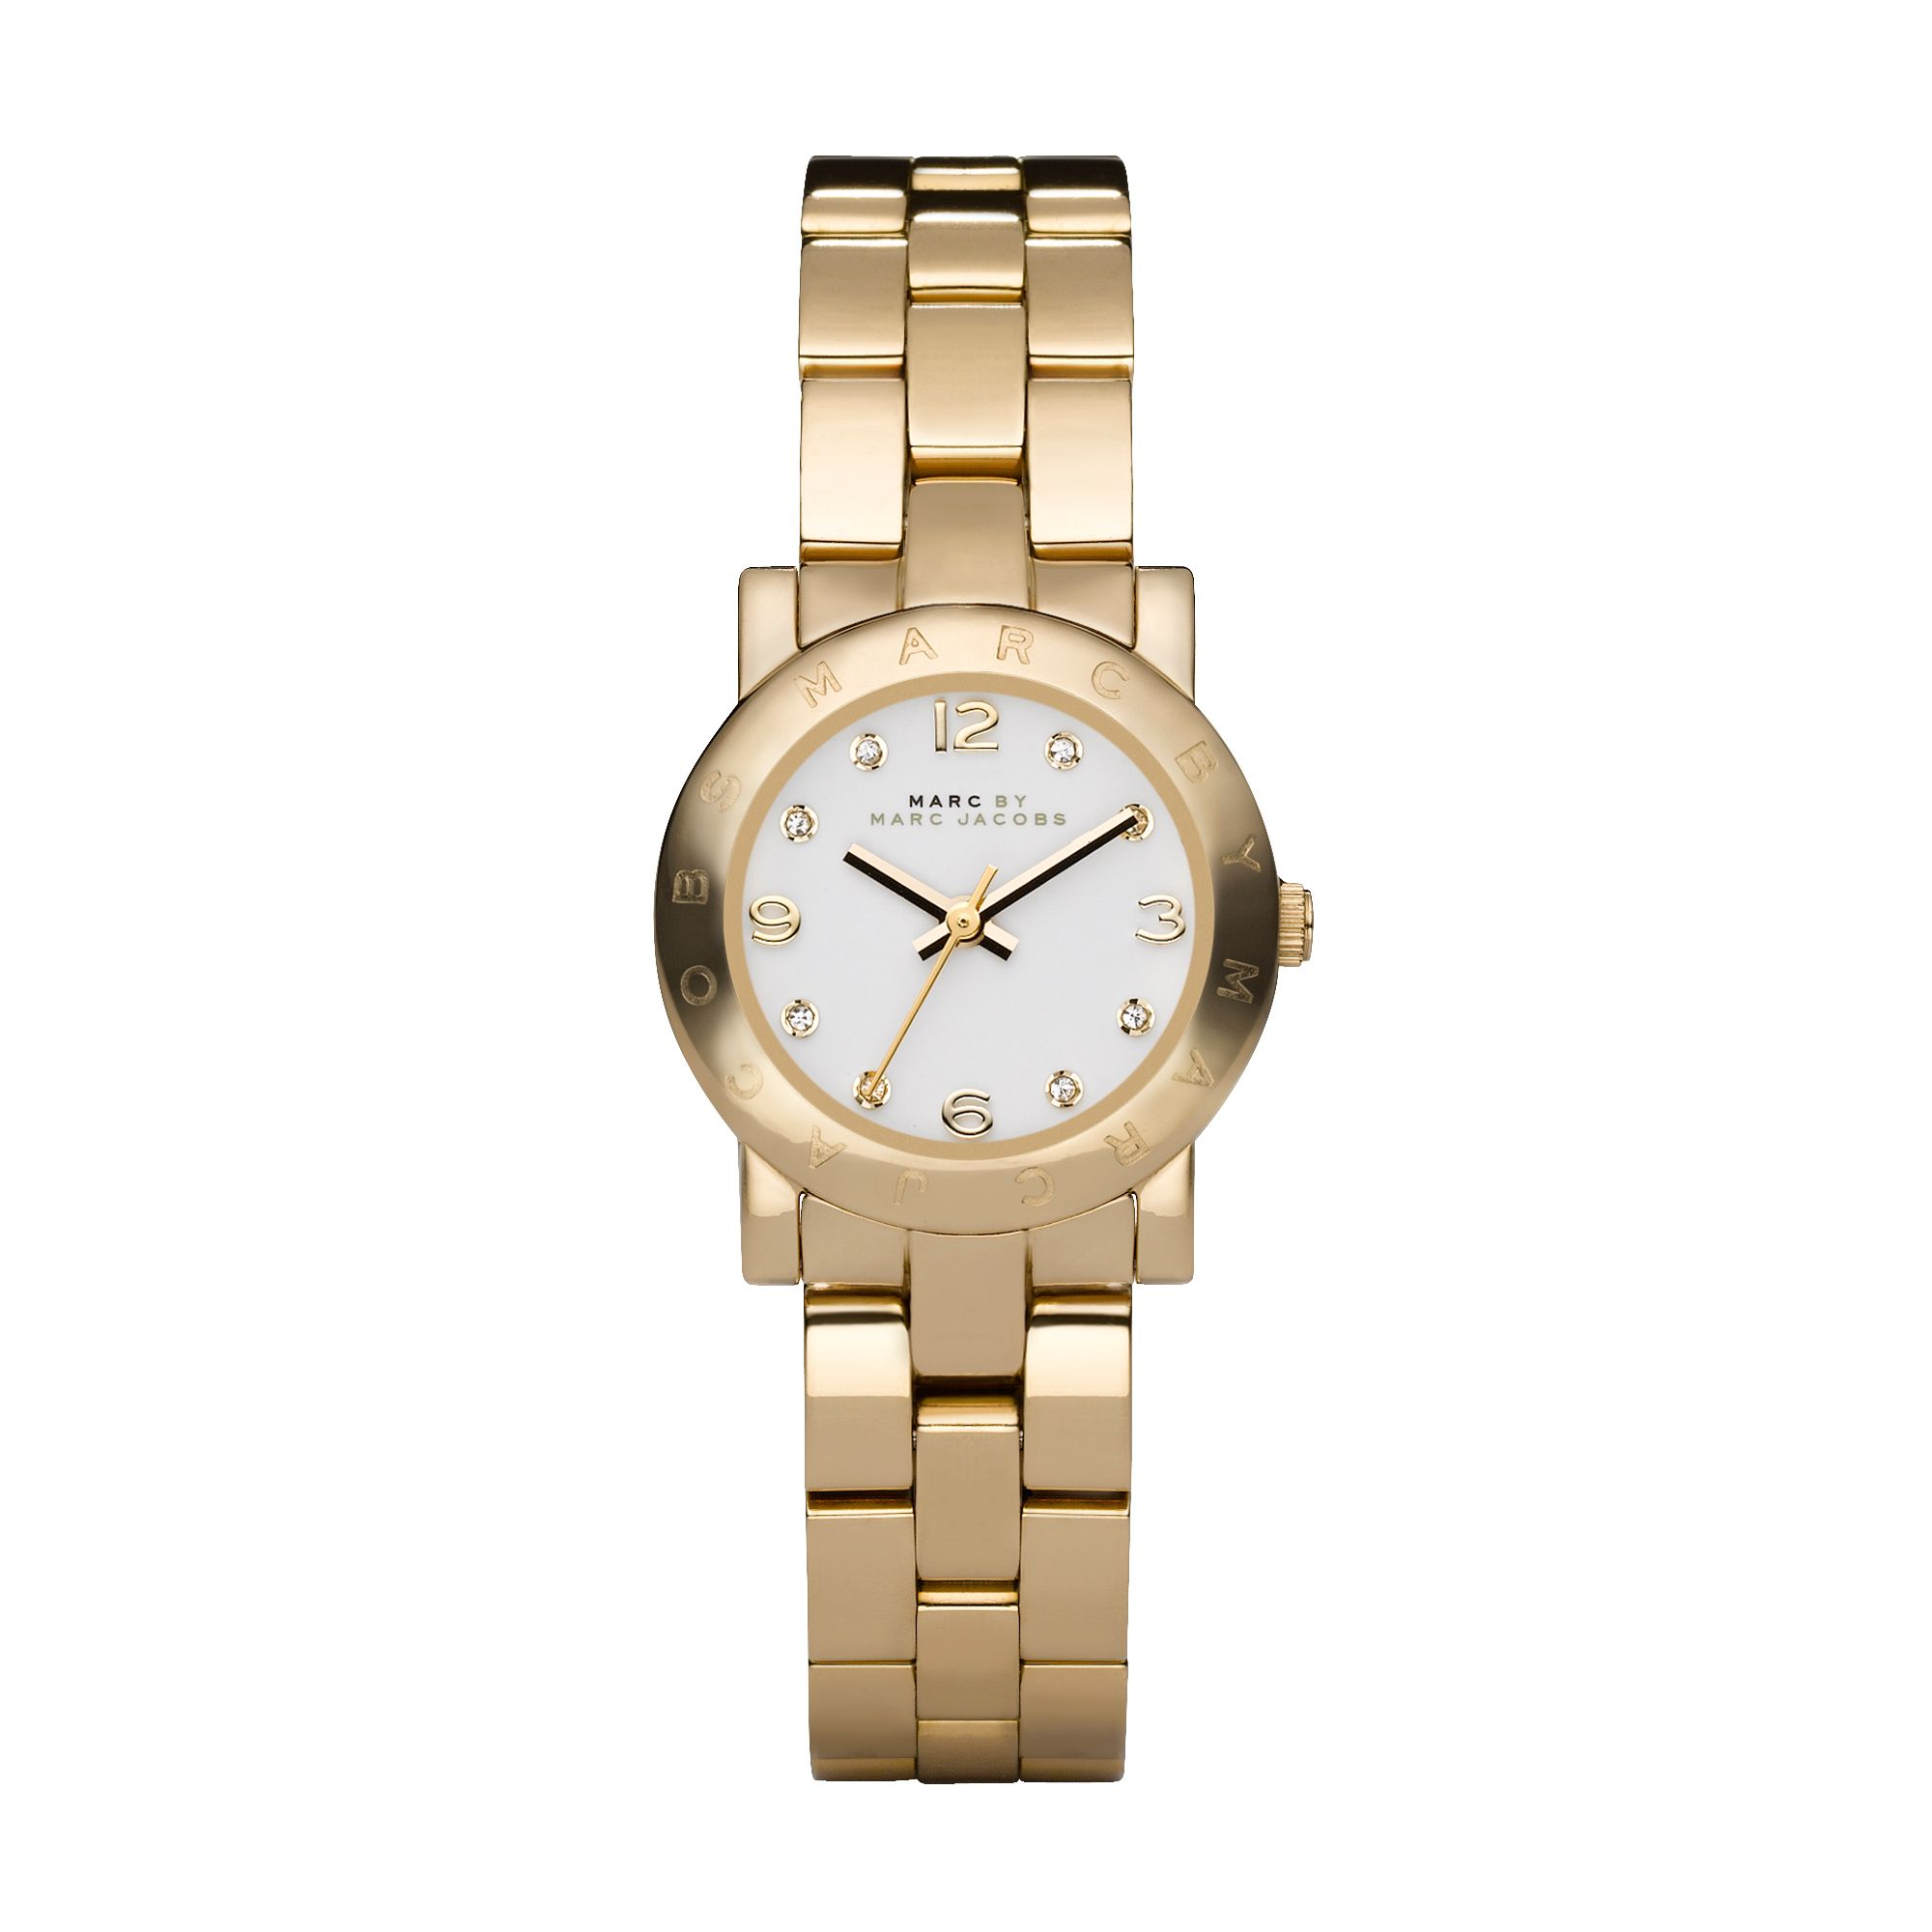 MBM3057 Amy Gold Mini Ladies Bracelet Watch